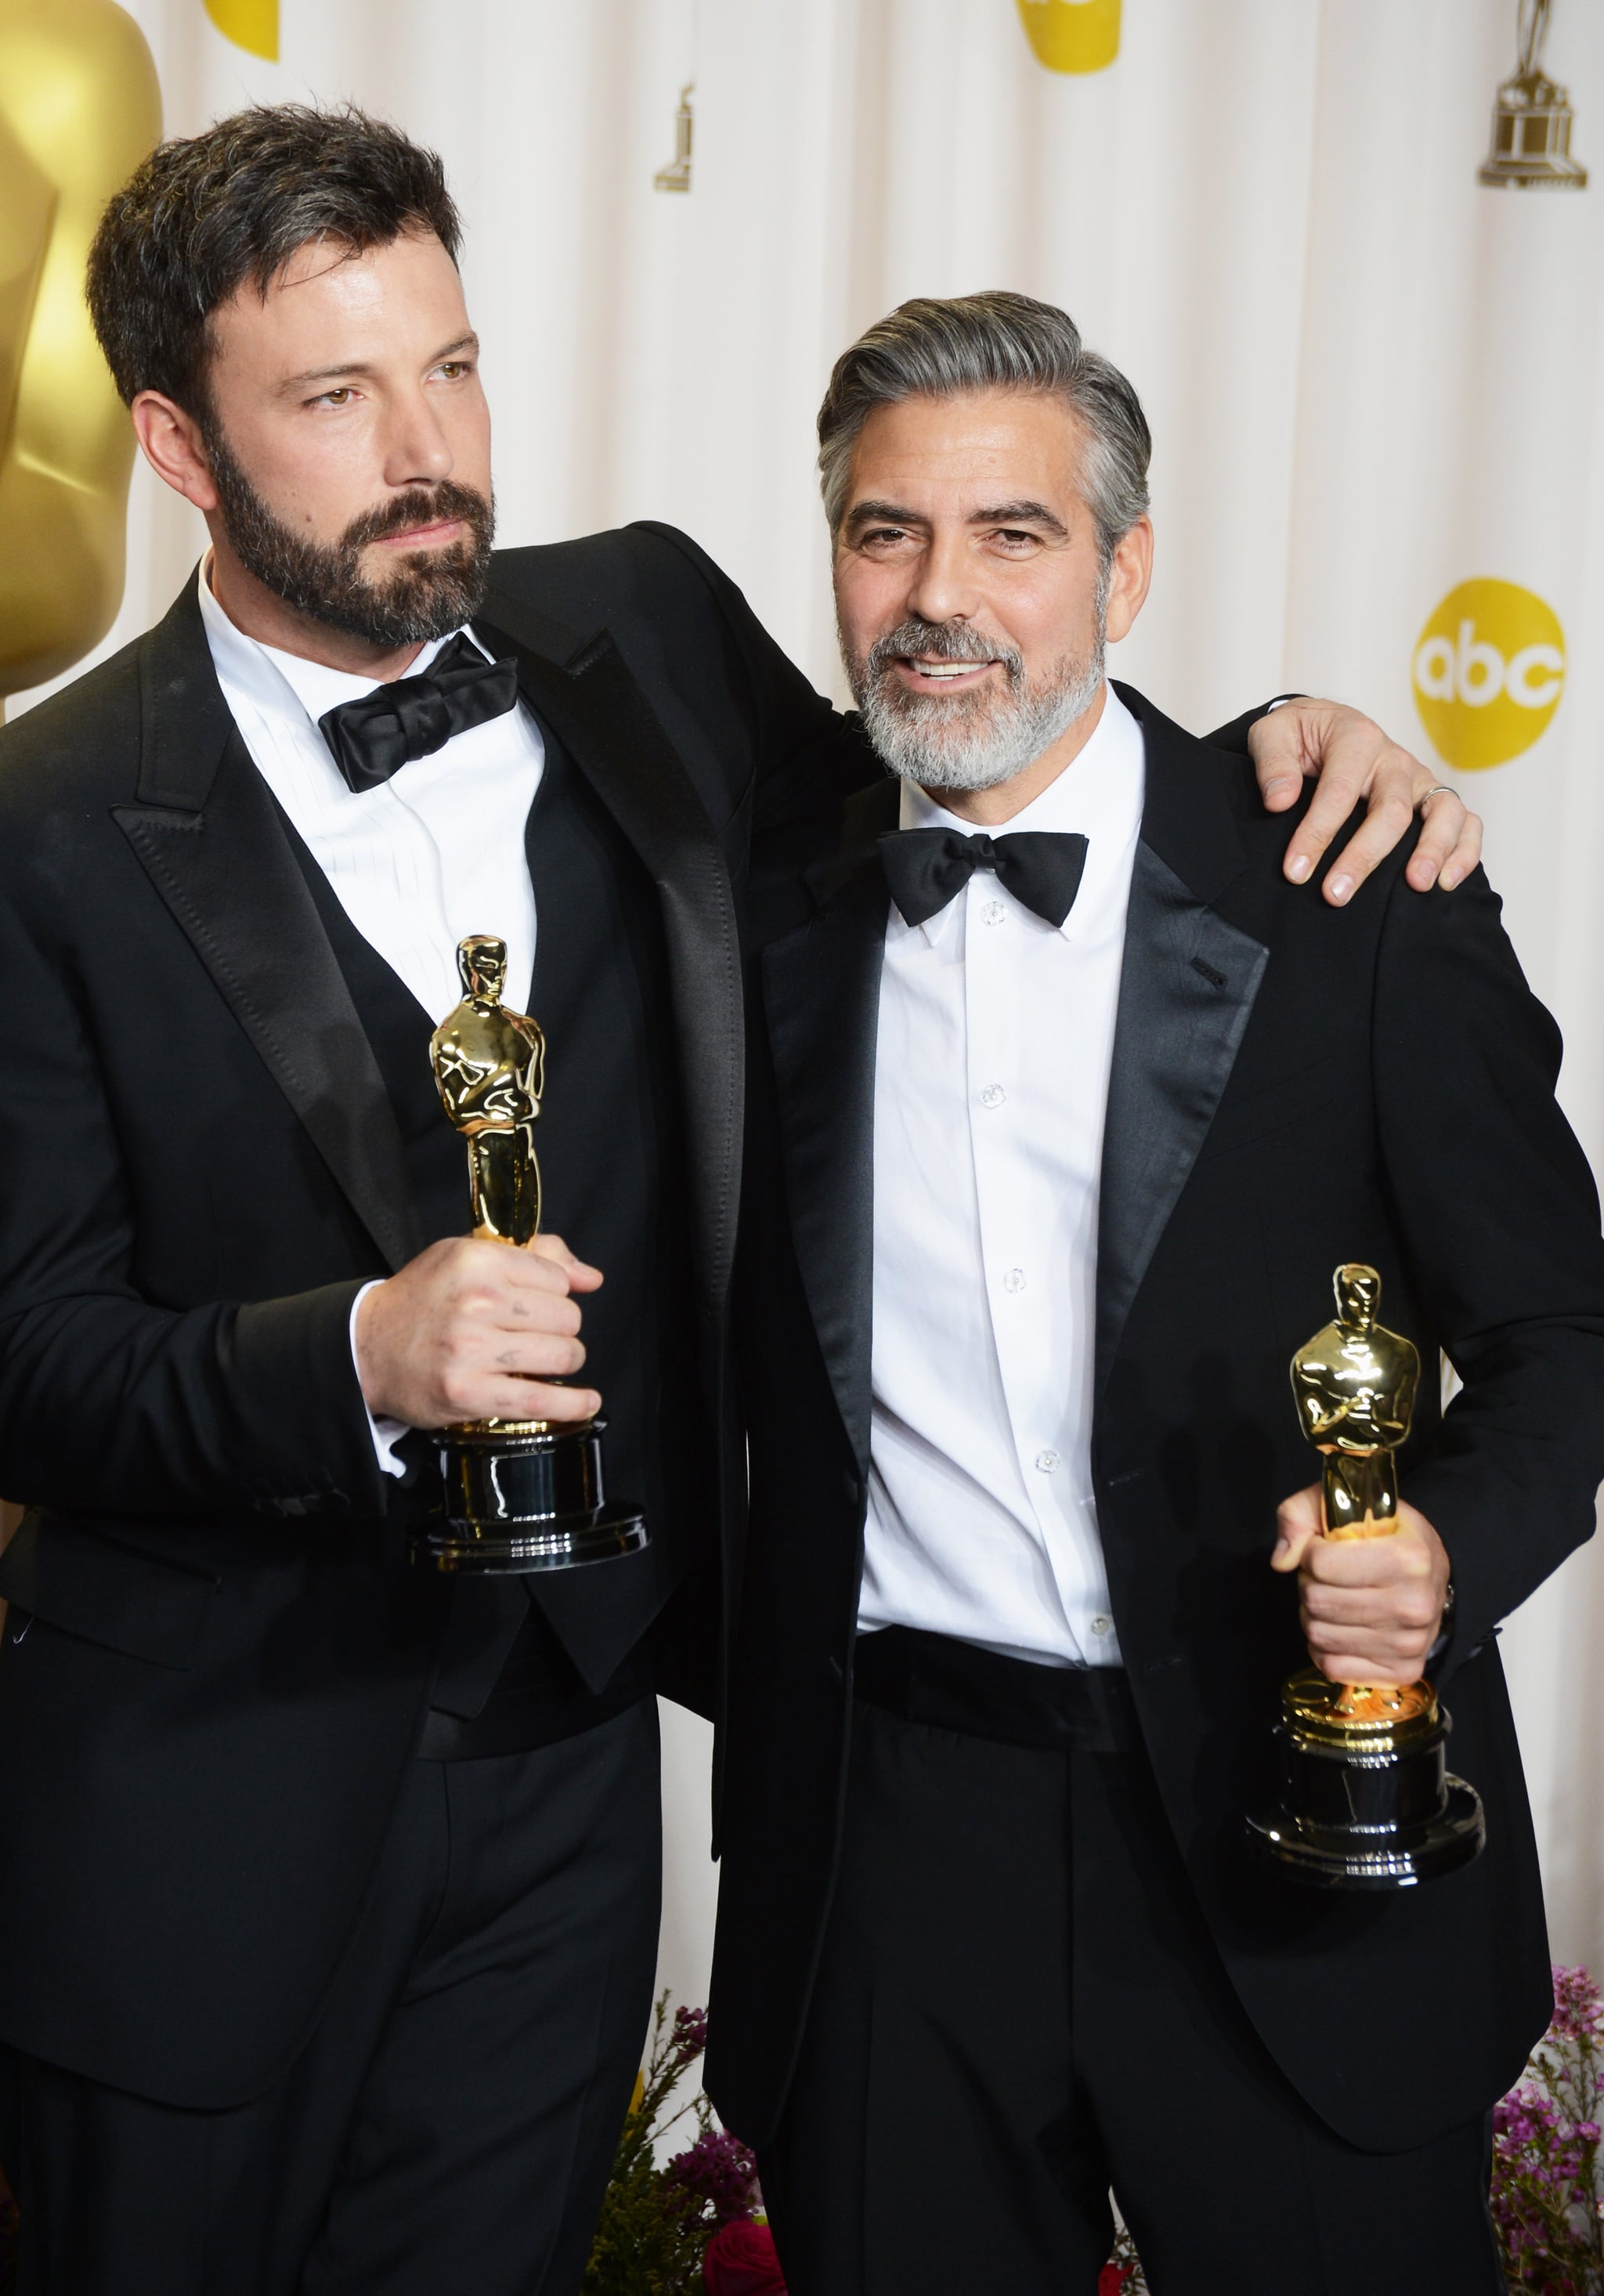 George Clooney at the 2013 Academy Awards